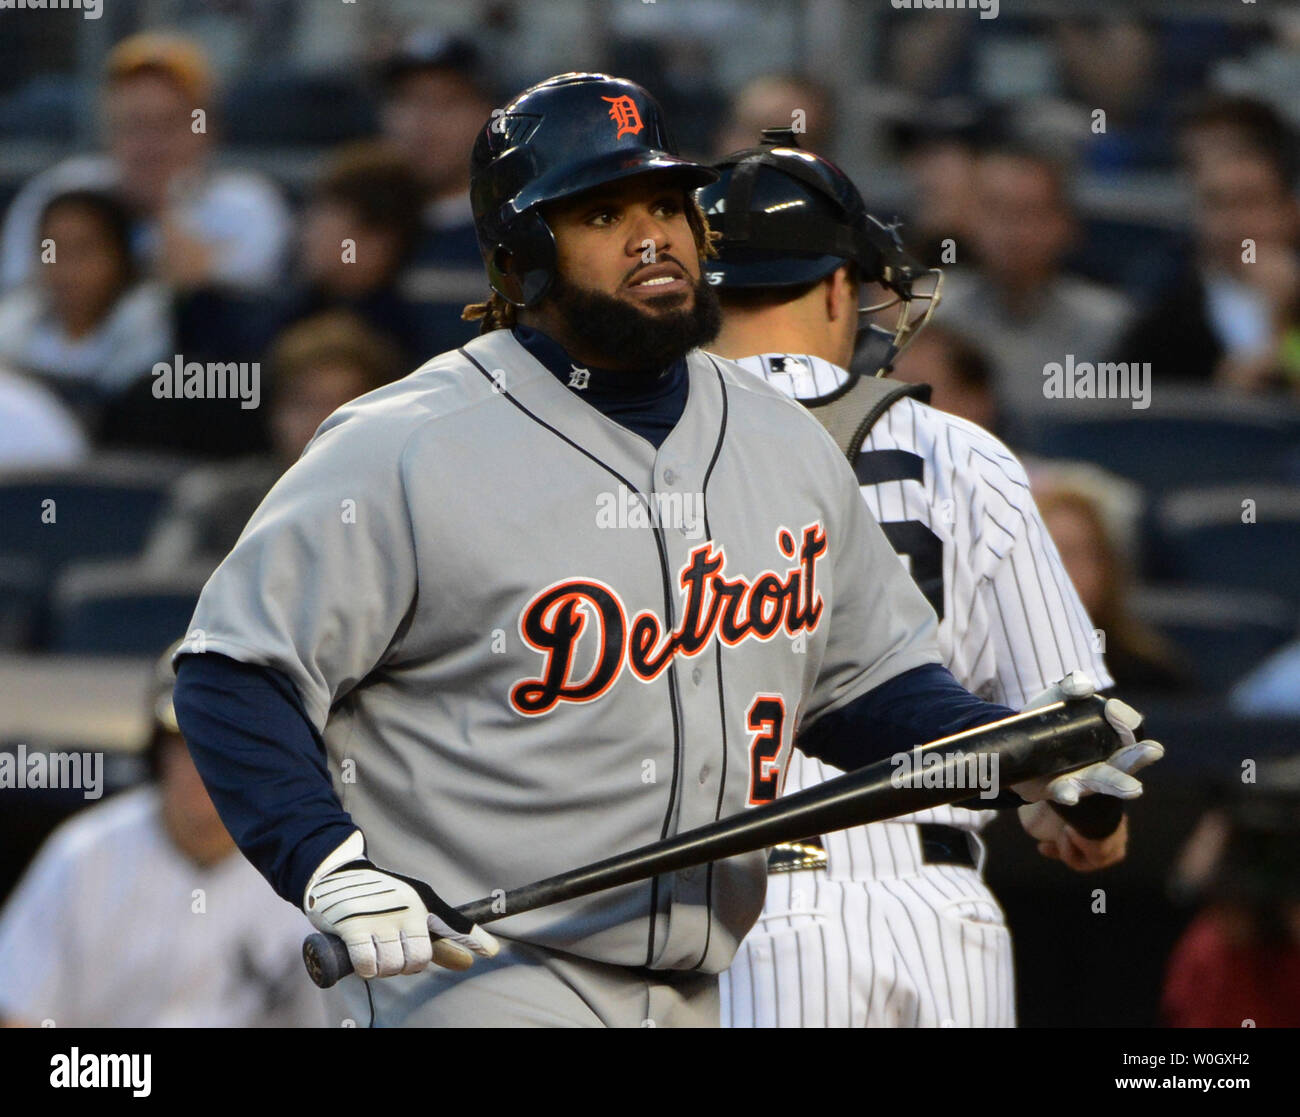 Detroit tigers Prince Fielder is upset after striking out